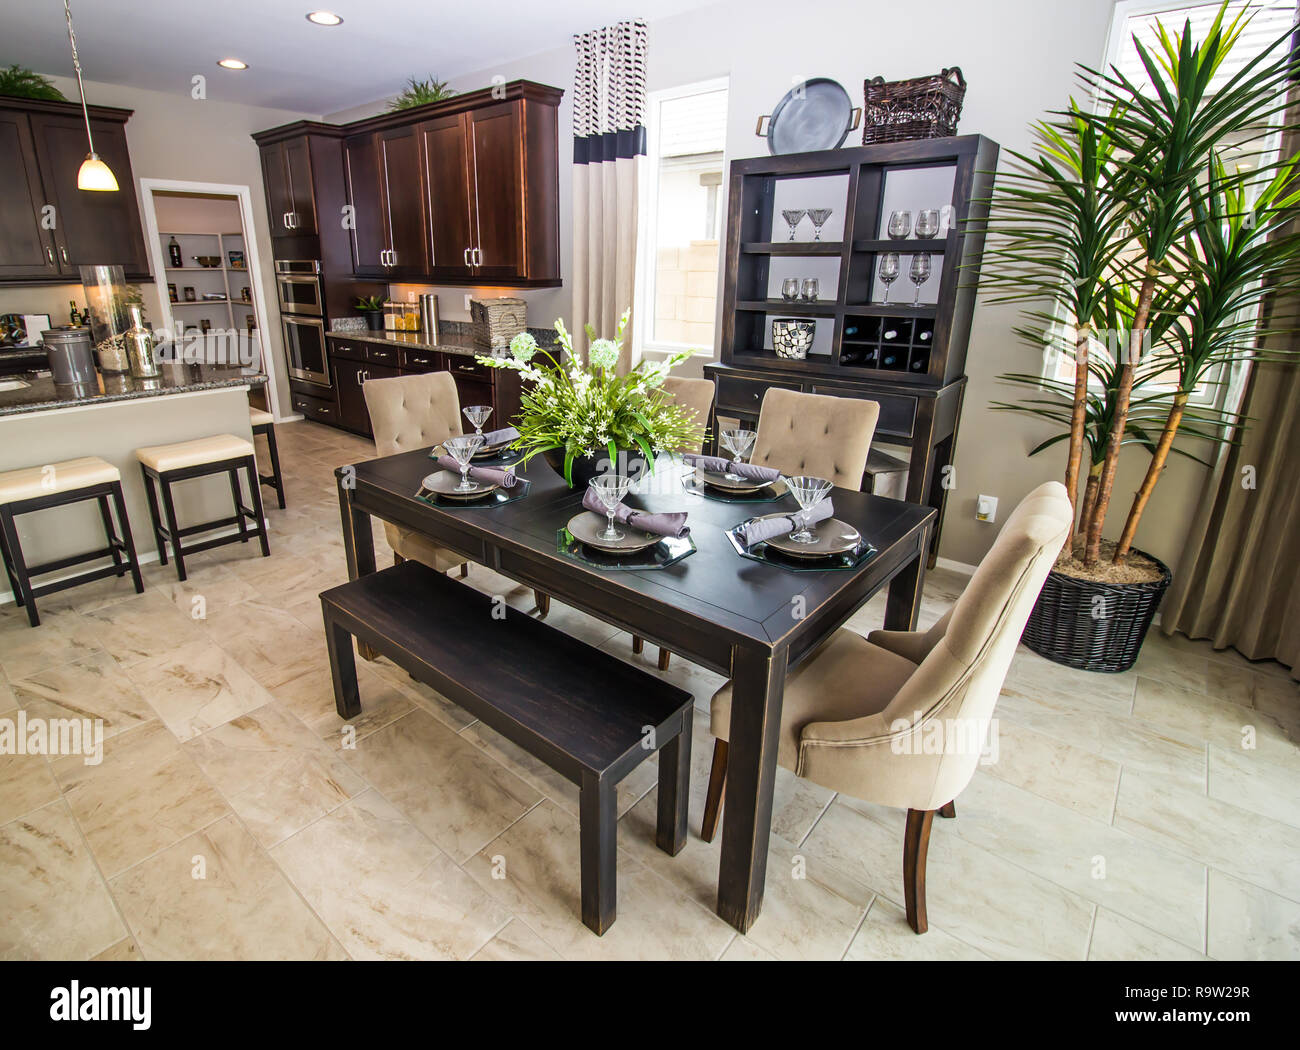 Modern Eating Area Off New Kitchen With Island - Stock Image